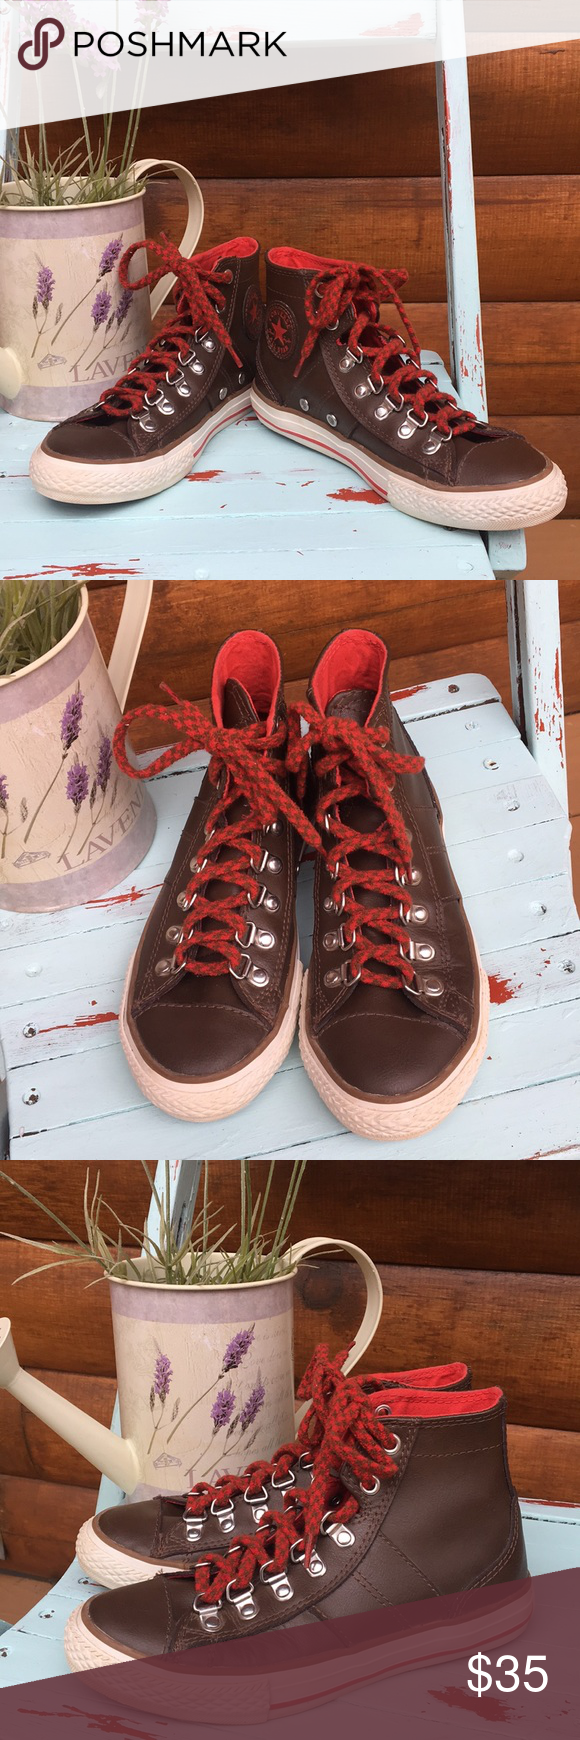 a38e7158035ef9 KIDS Leather Converse Red and brown hi-top All Stars in excellent used  condition.